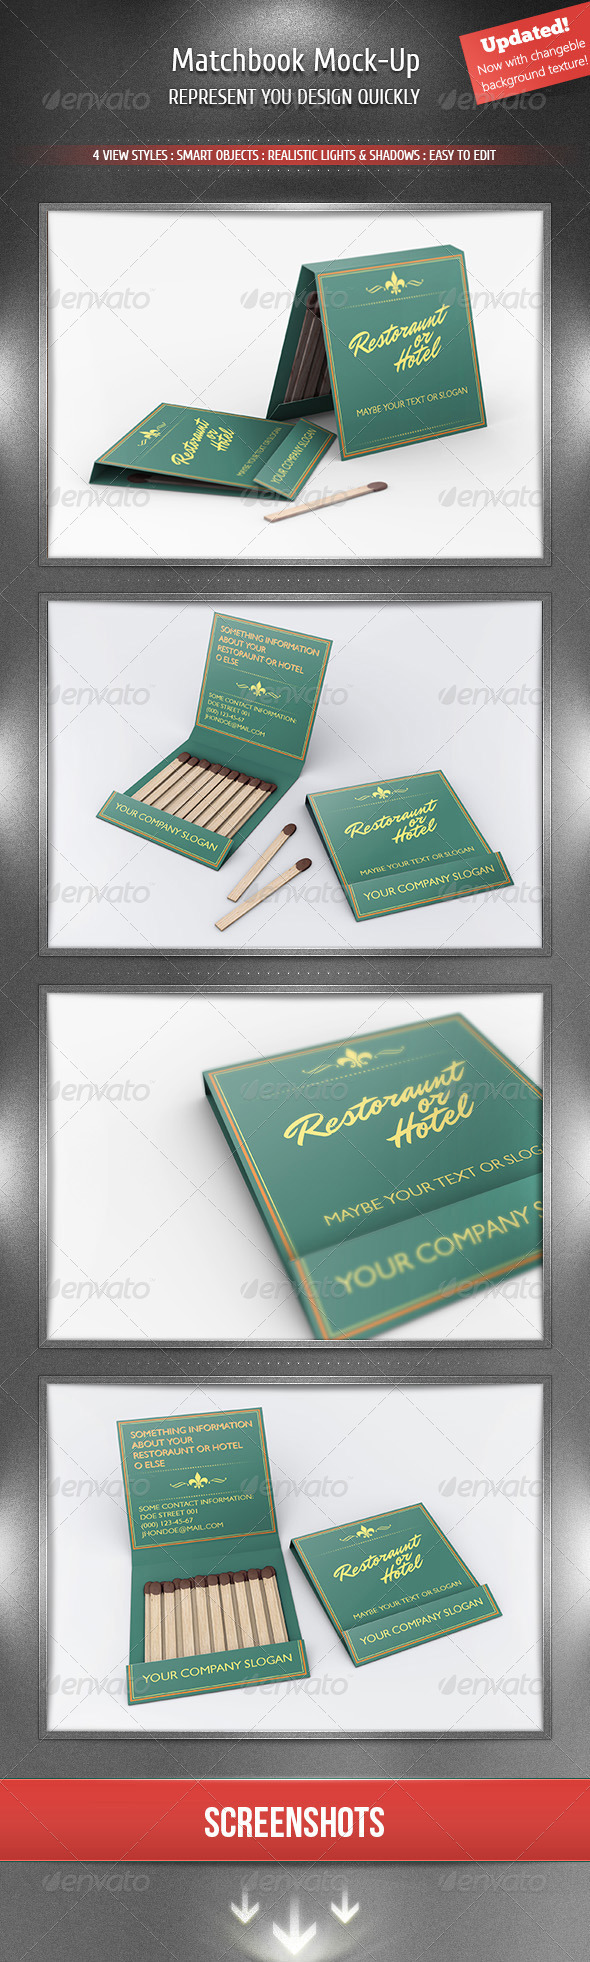 Matchbook Mock-Up - Miscellaneous Product Mock-Ups